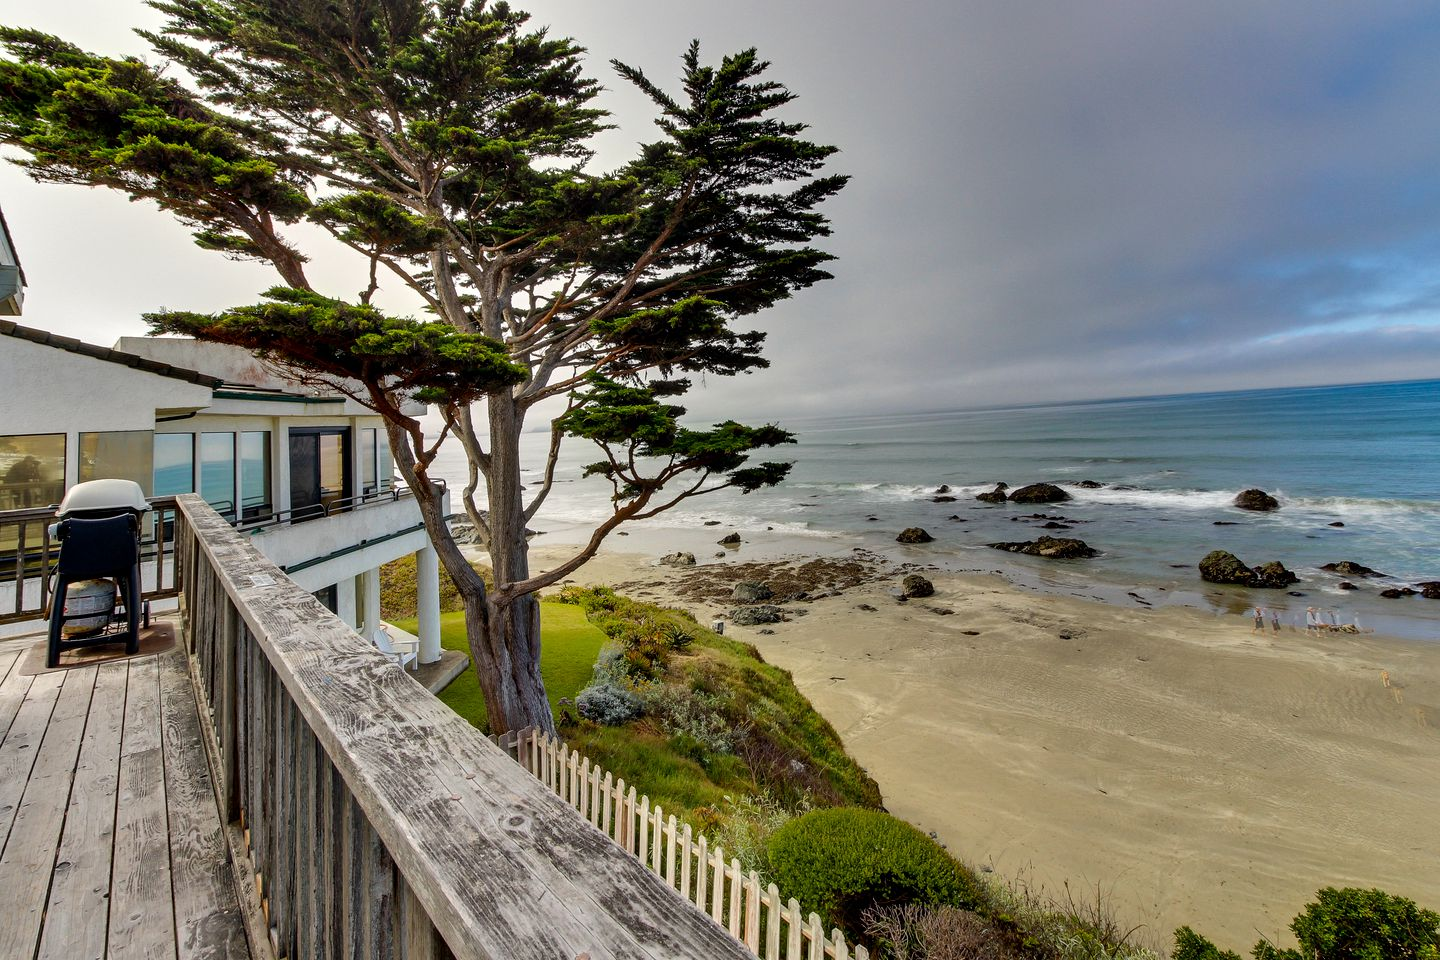 Beach Houses (Cayucos, California, United States)